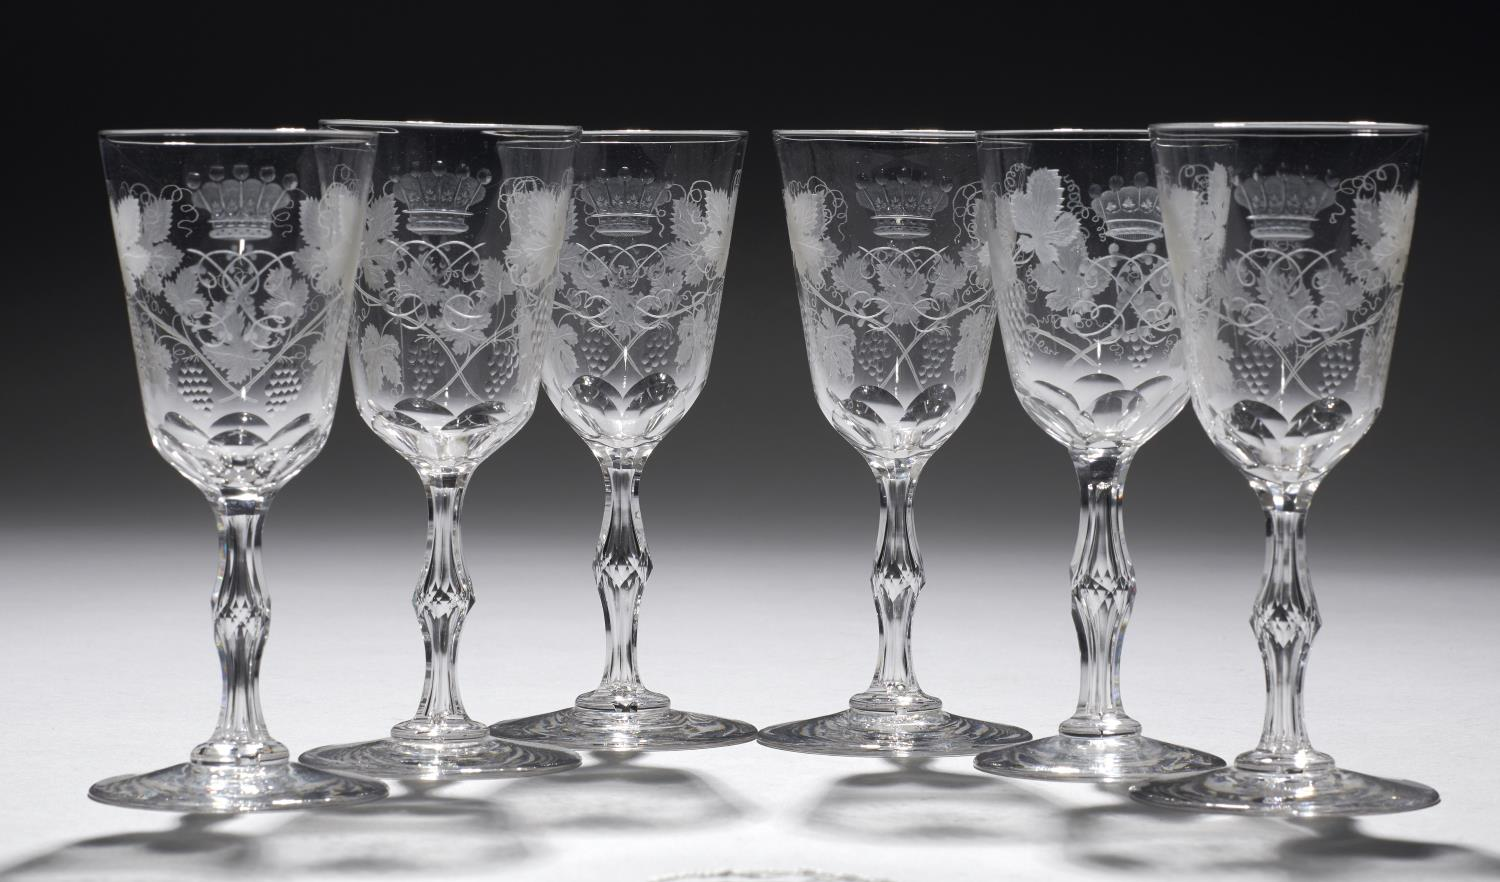 Lot 375 - A SET OF SIX ENGLISH WINE GLASSES, EARLY 20TH C engraved with a mirror monogram beneath the